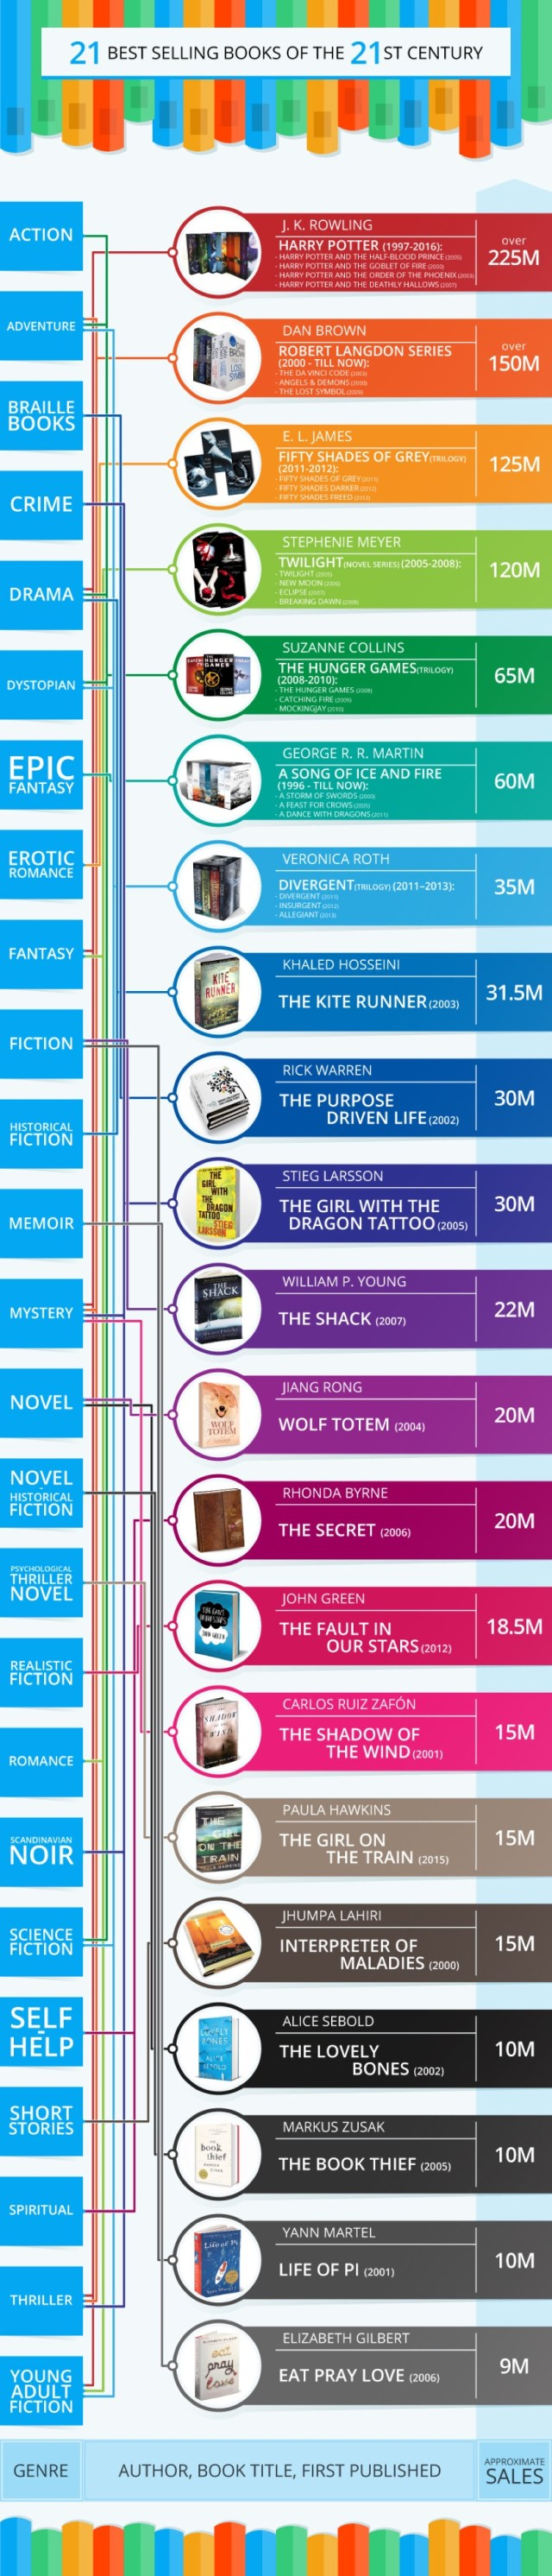 best selling novels of the 21st century [infographic]